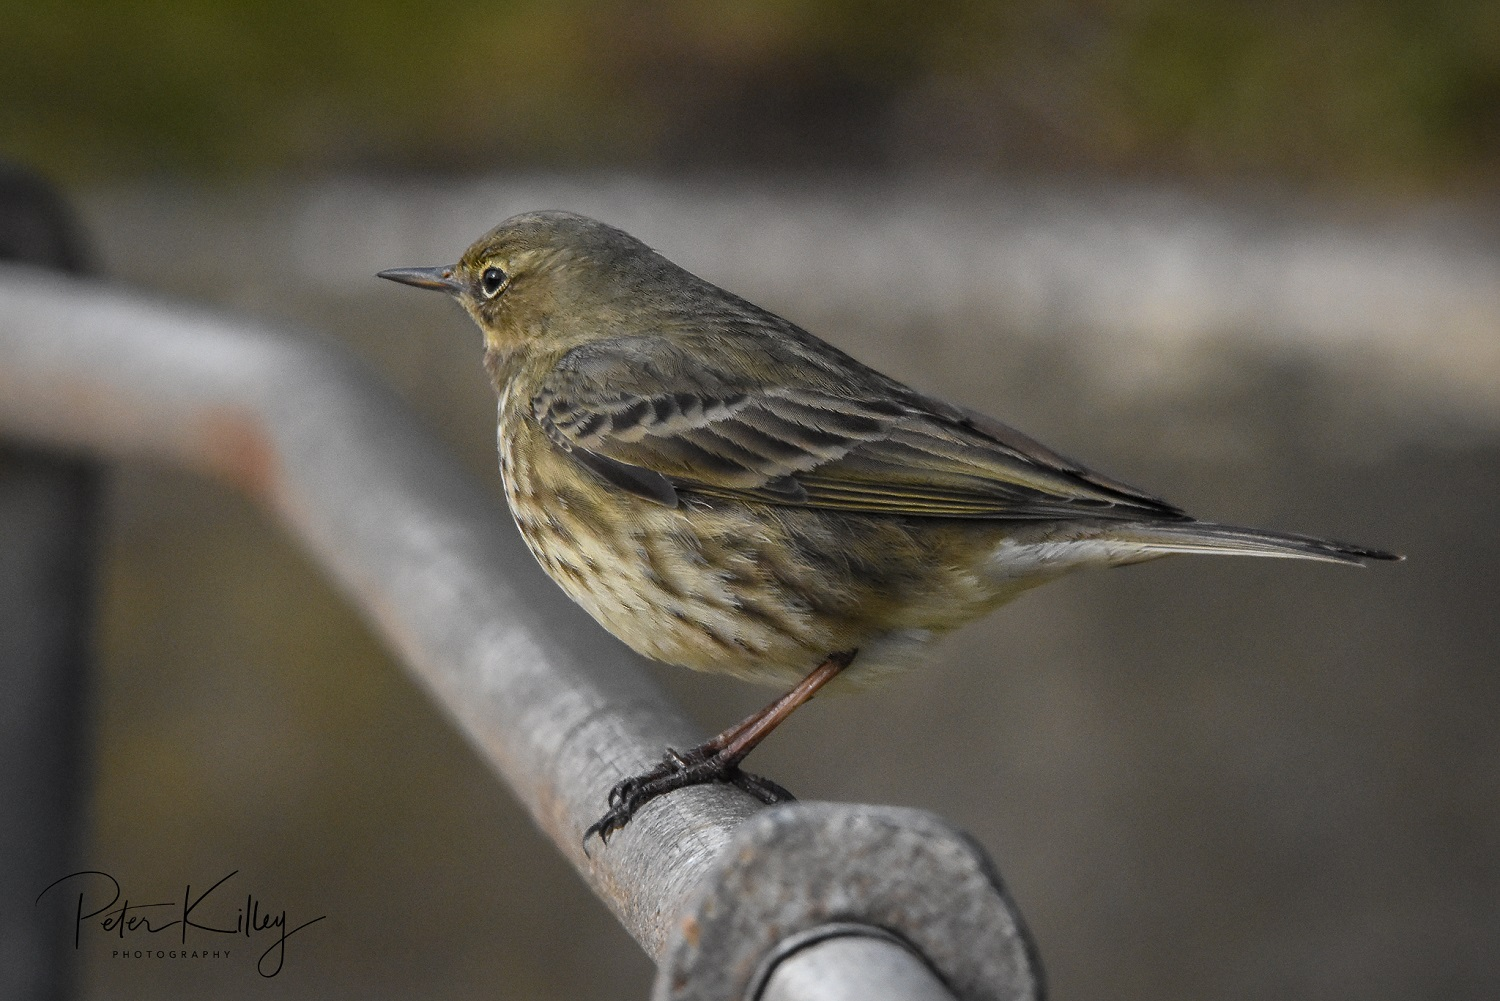 Rock Pipit (Peter Killey)